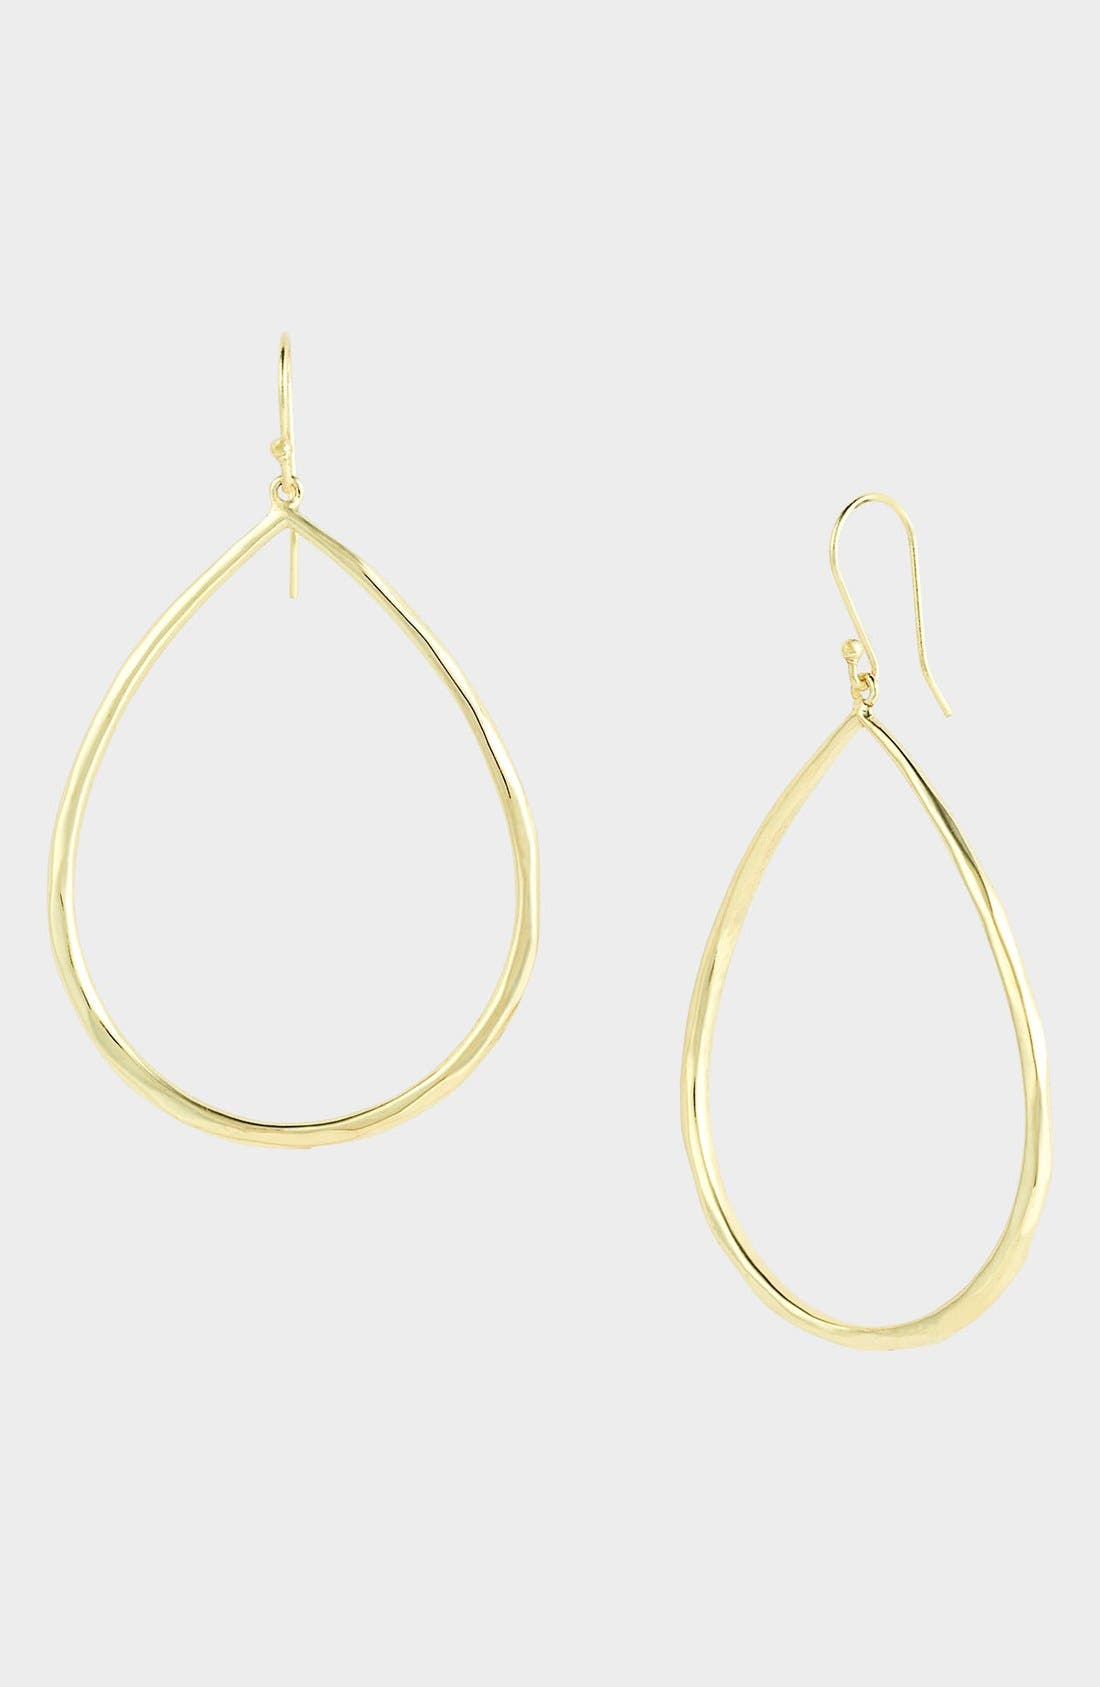 Glamazon Sculptural Metal 18K Yellow Gold Large Teardrop Earrings